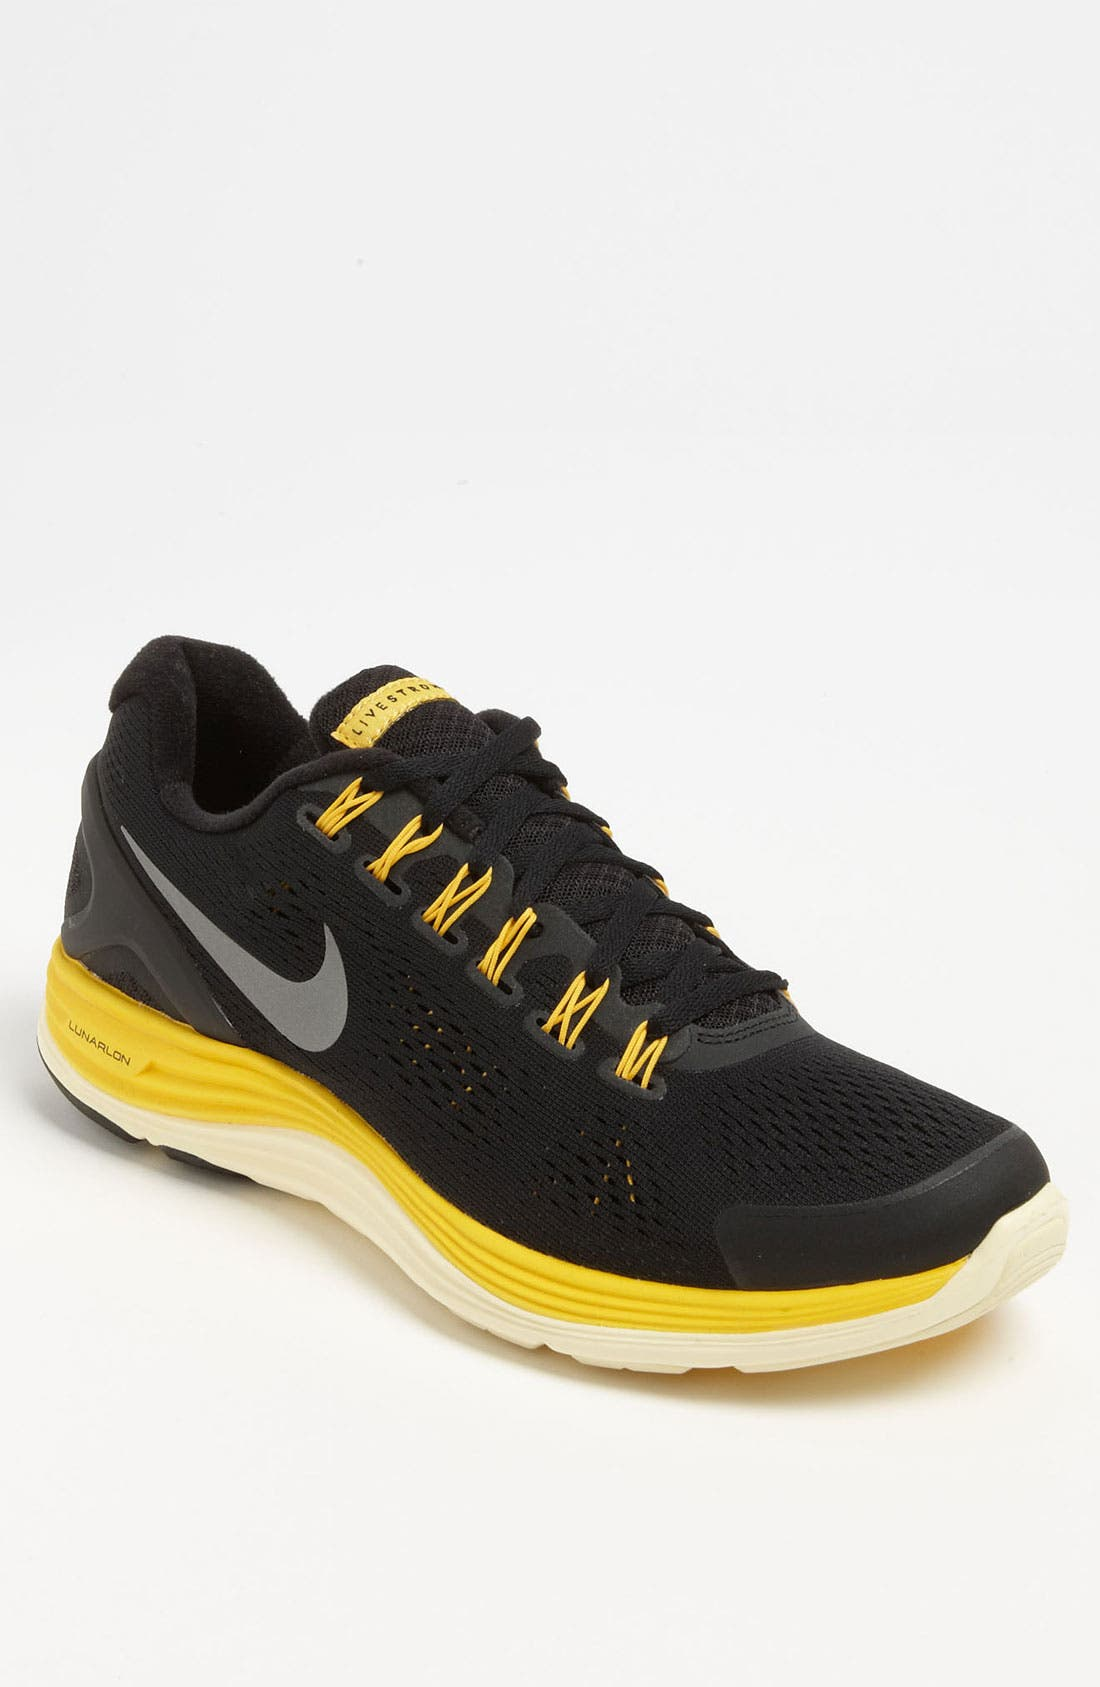 Alternate Image 1 Selected - Nike 'LIVESTRONG LunarGlide+ 4' Running Shoe (Men)